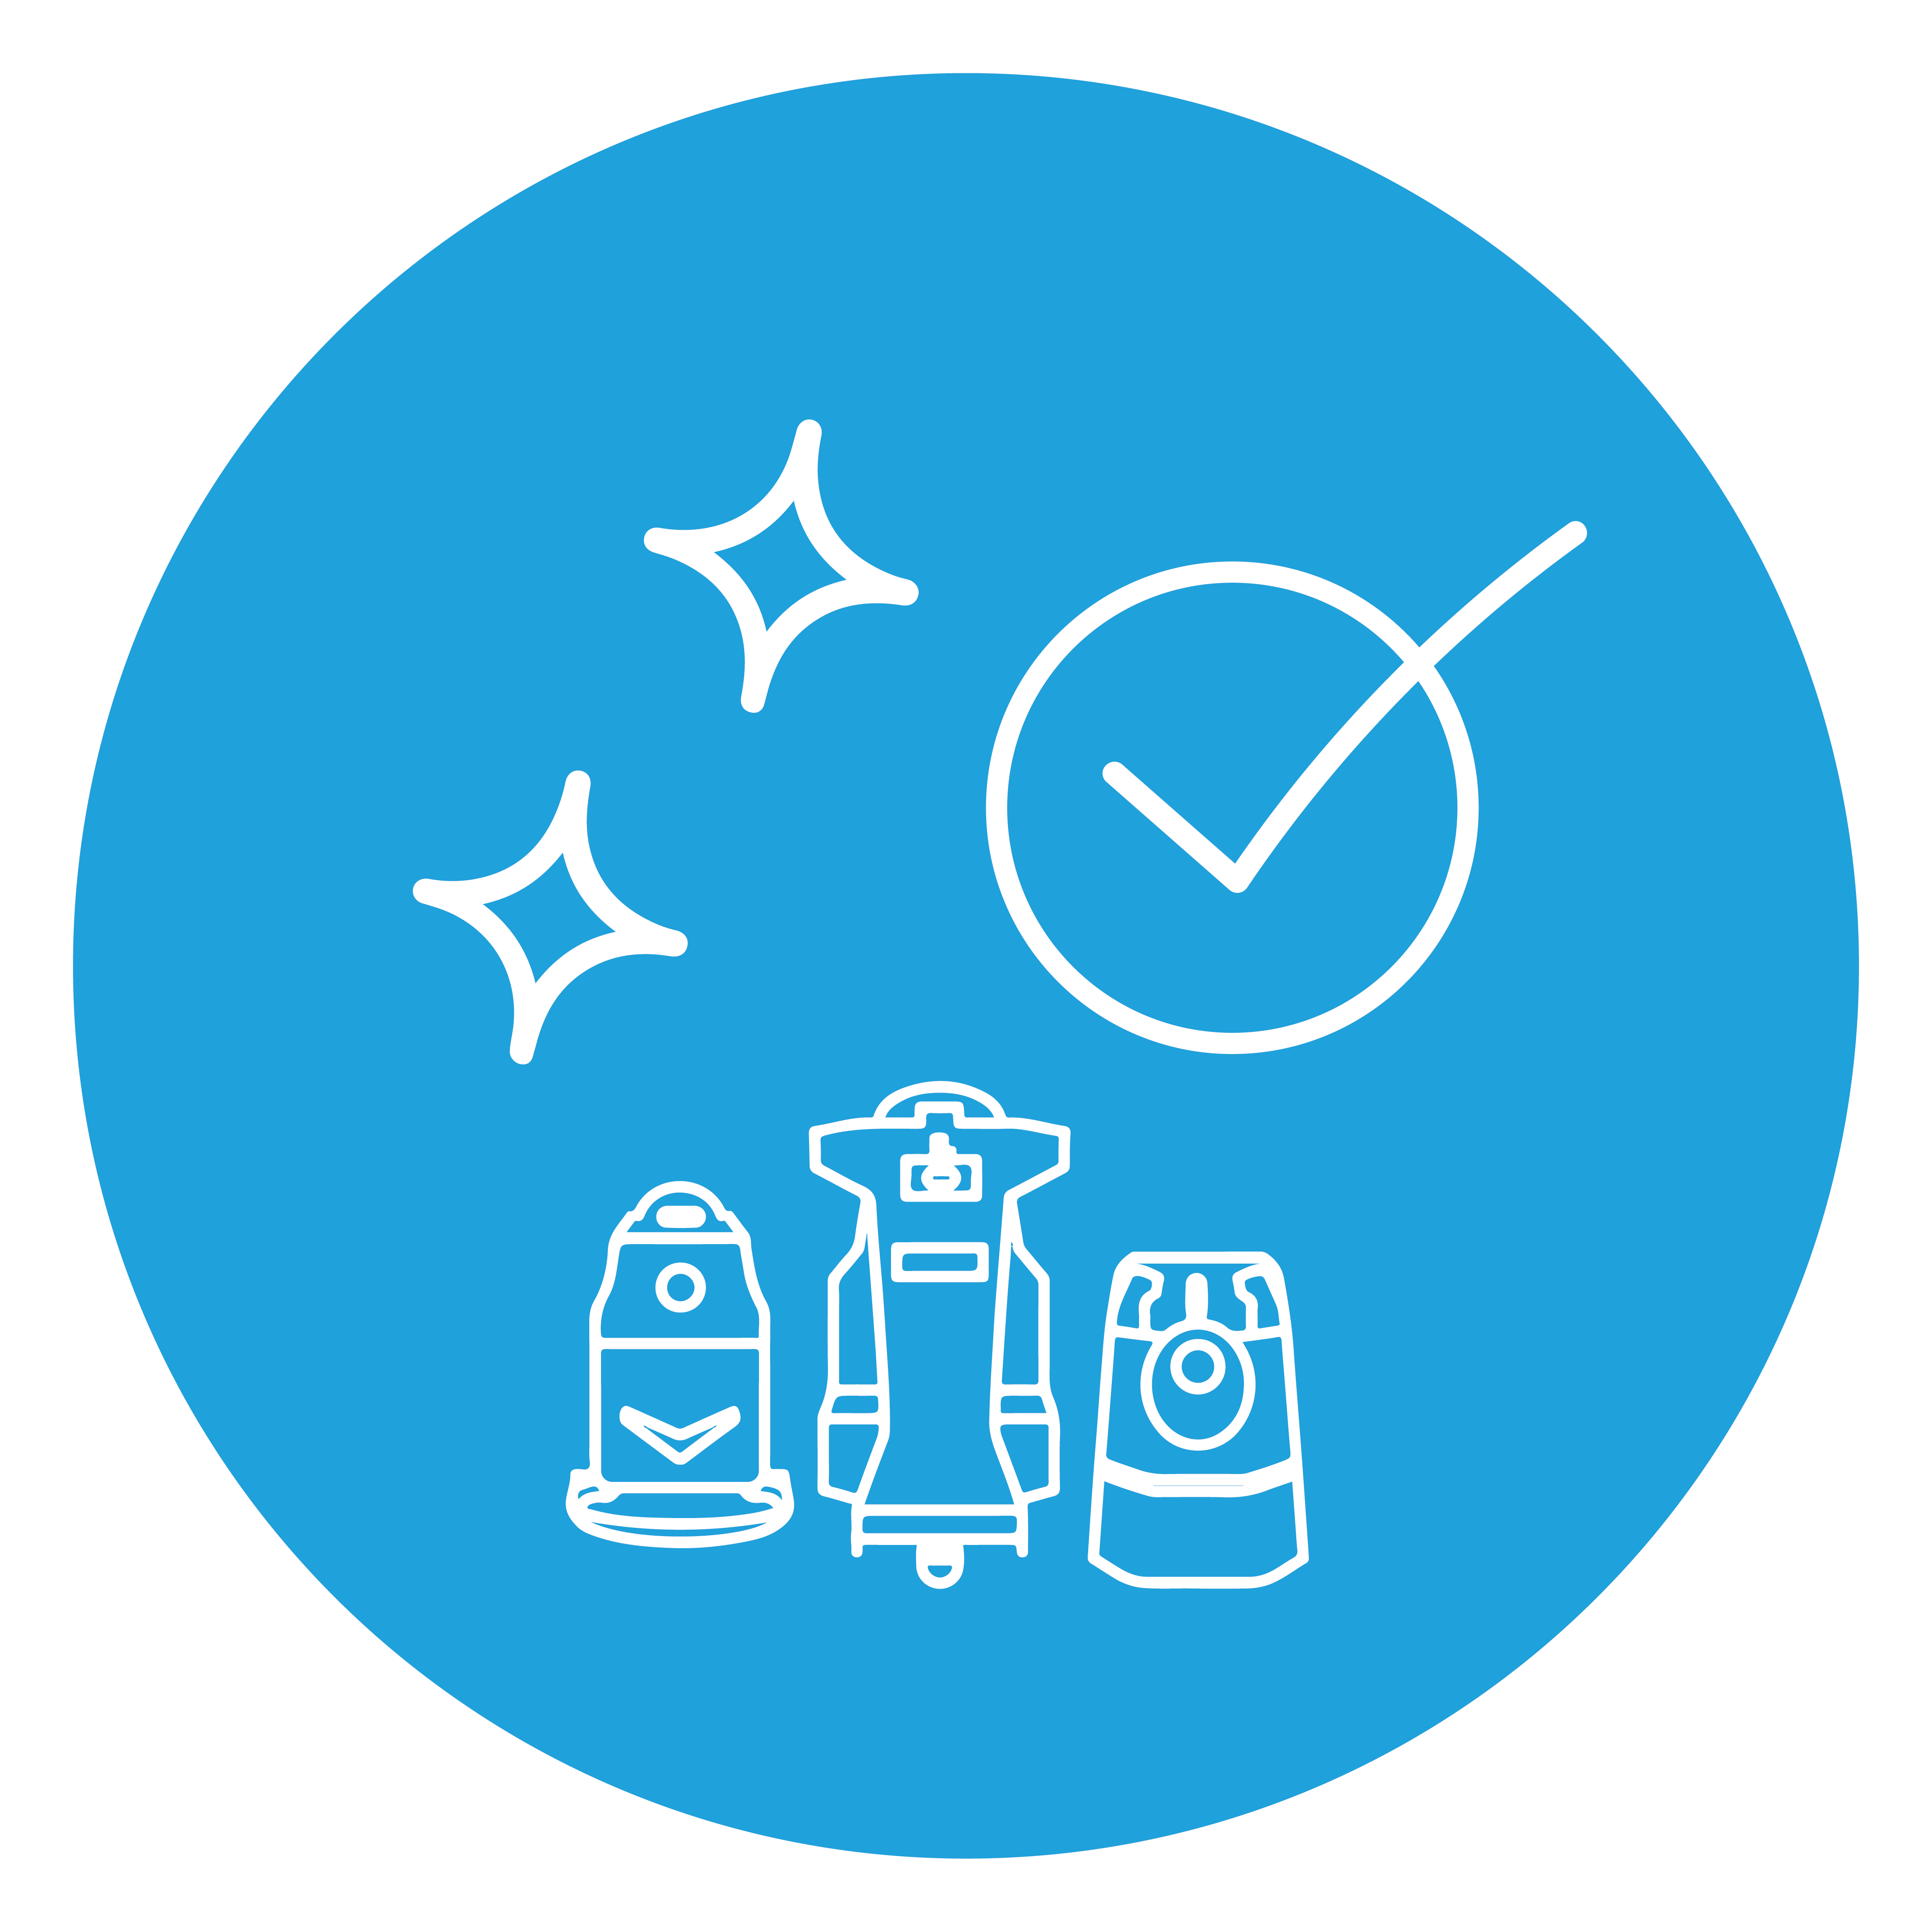 Cleaning machines with clean sparkles icon